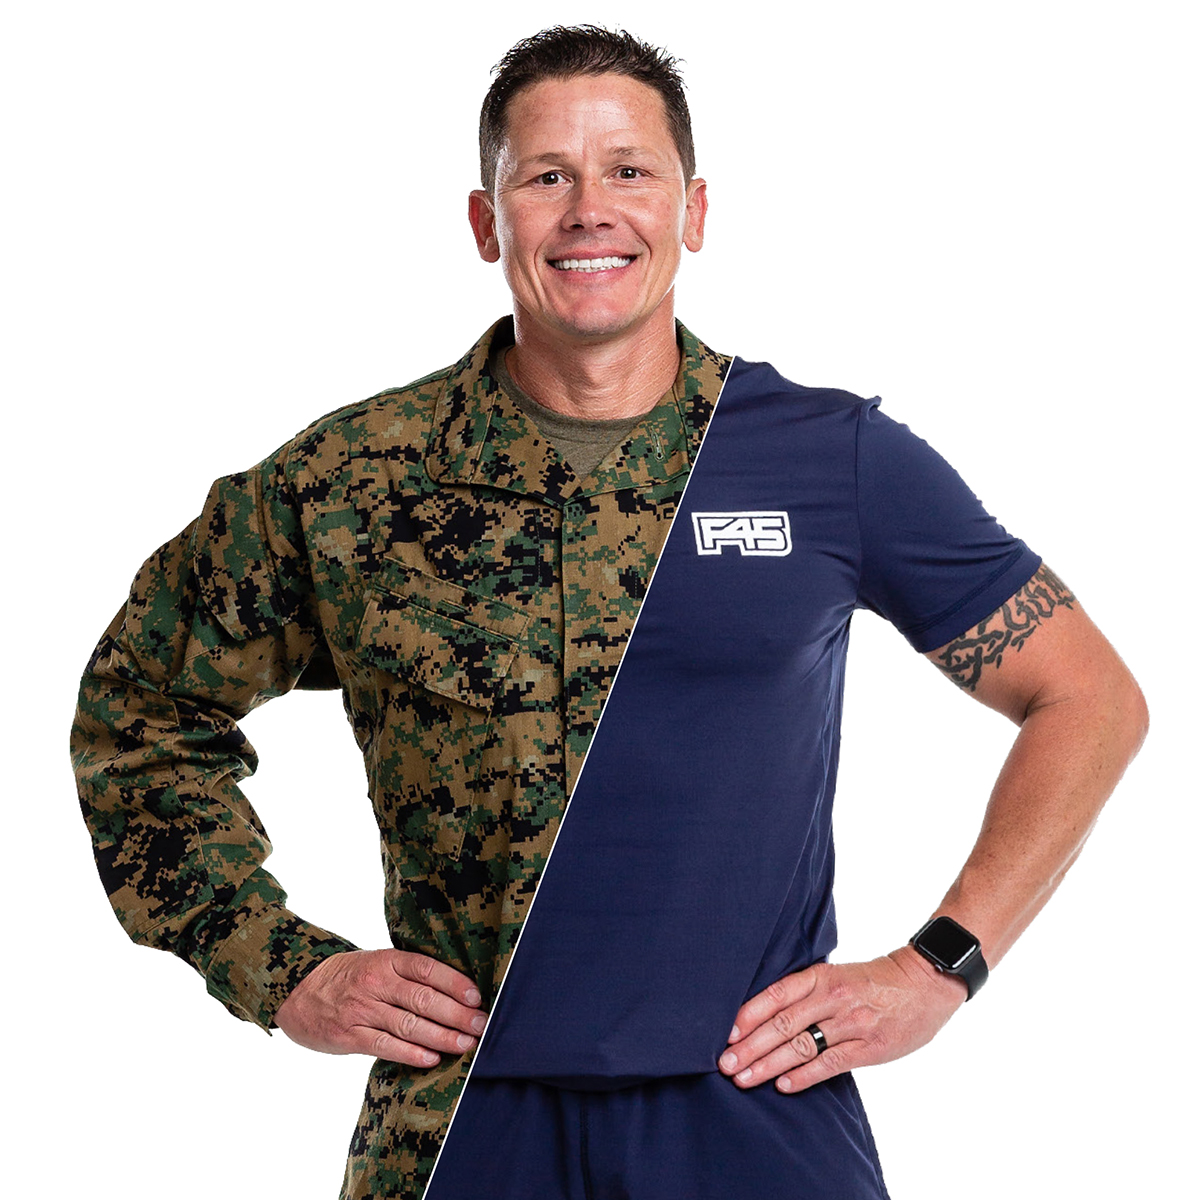 Michael Nichols, Fitness Leader of the Year finalist